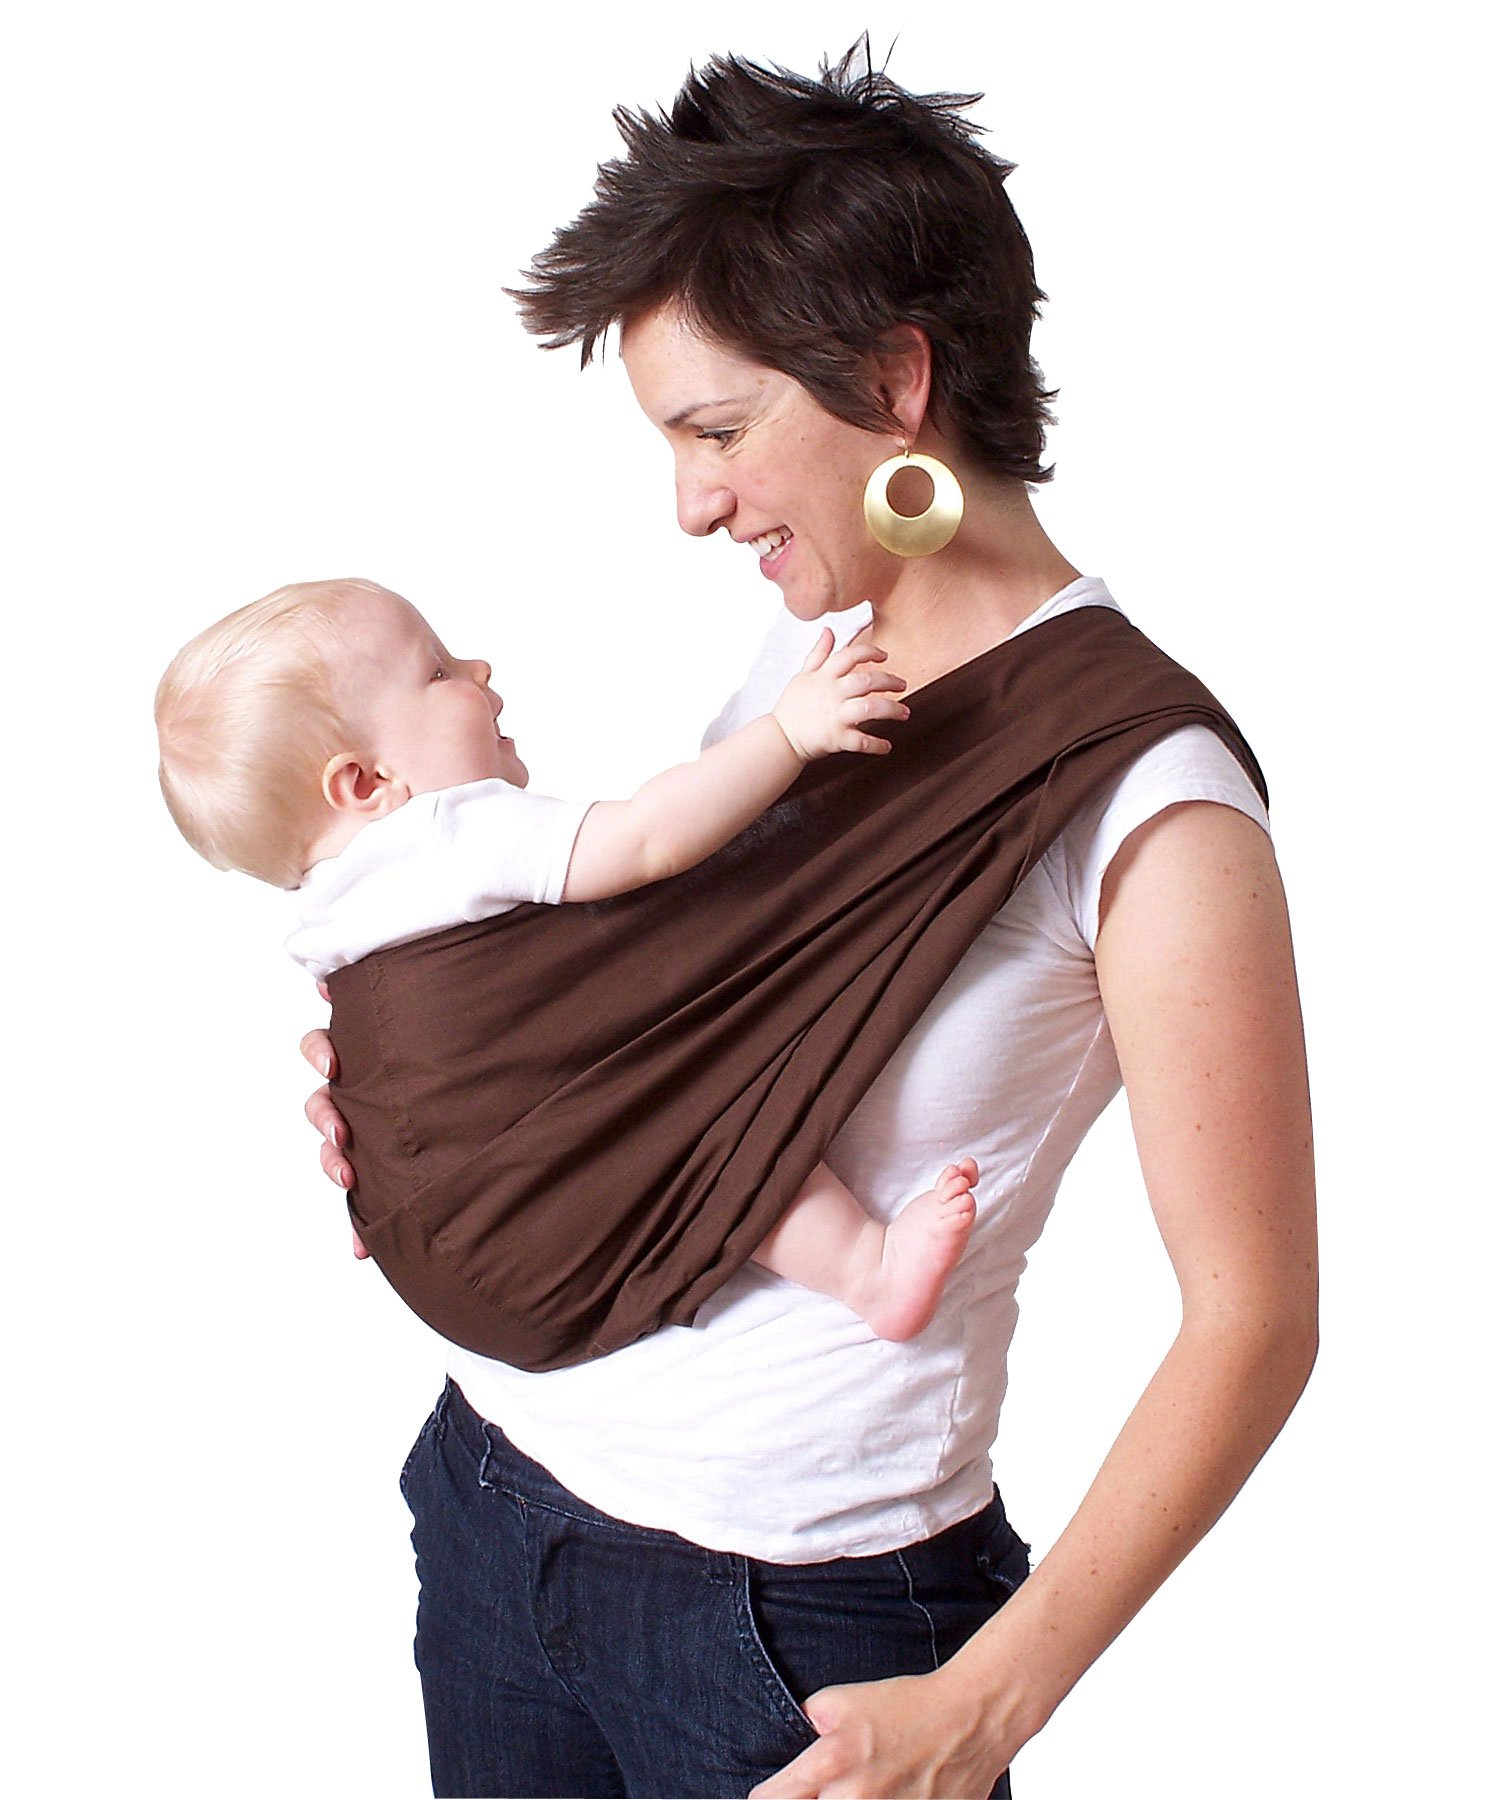 HugaMonkey Cotton Baby Sling Wrap Carrier for Newborn Babies, Infants and Toddlers Upto 3 Years - Brown, Extra Large